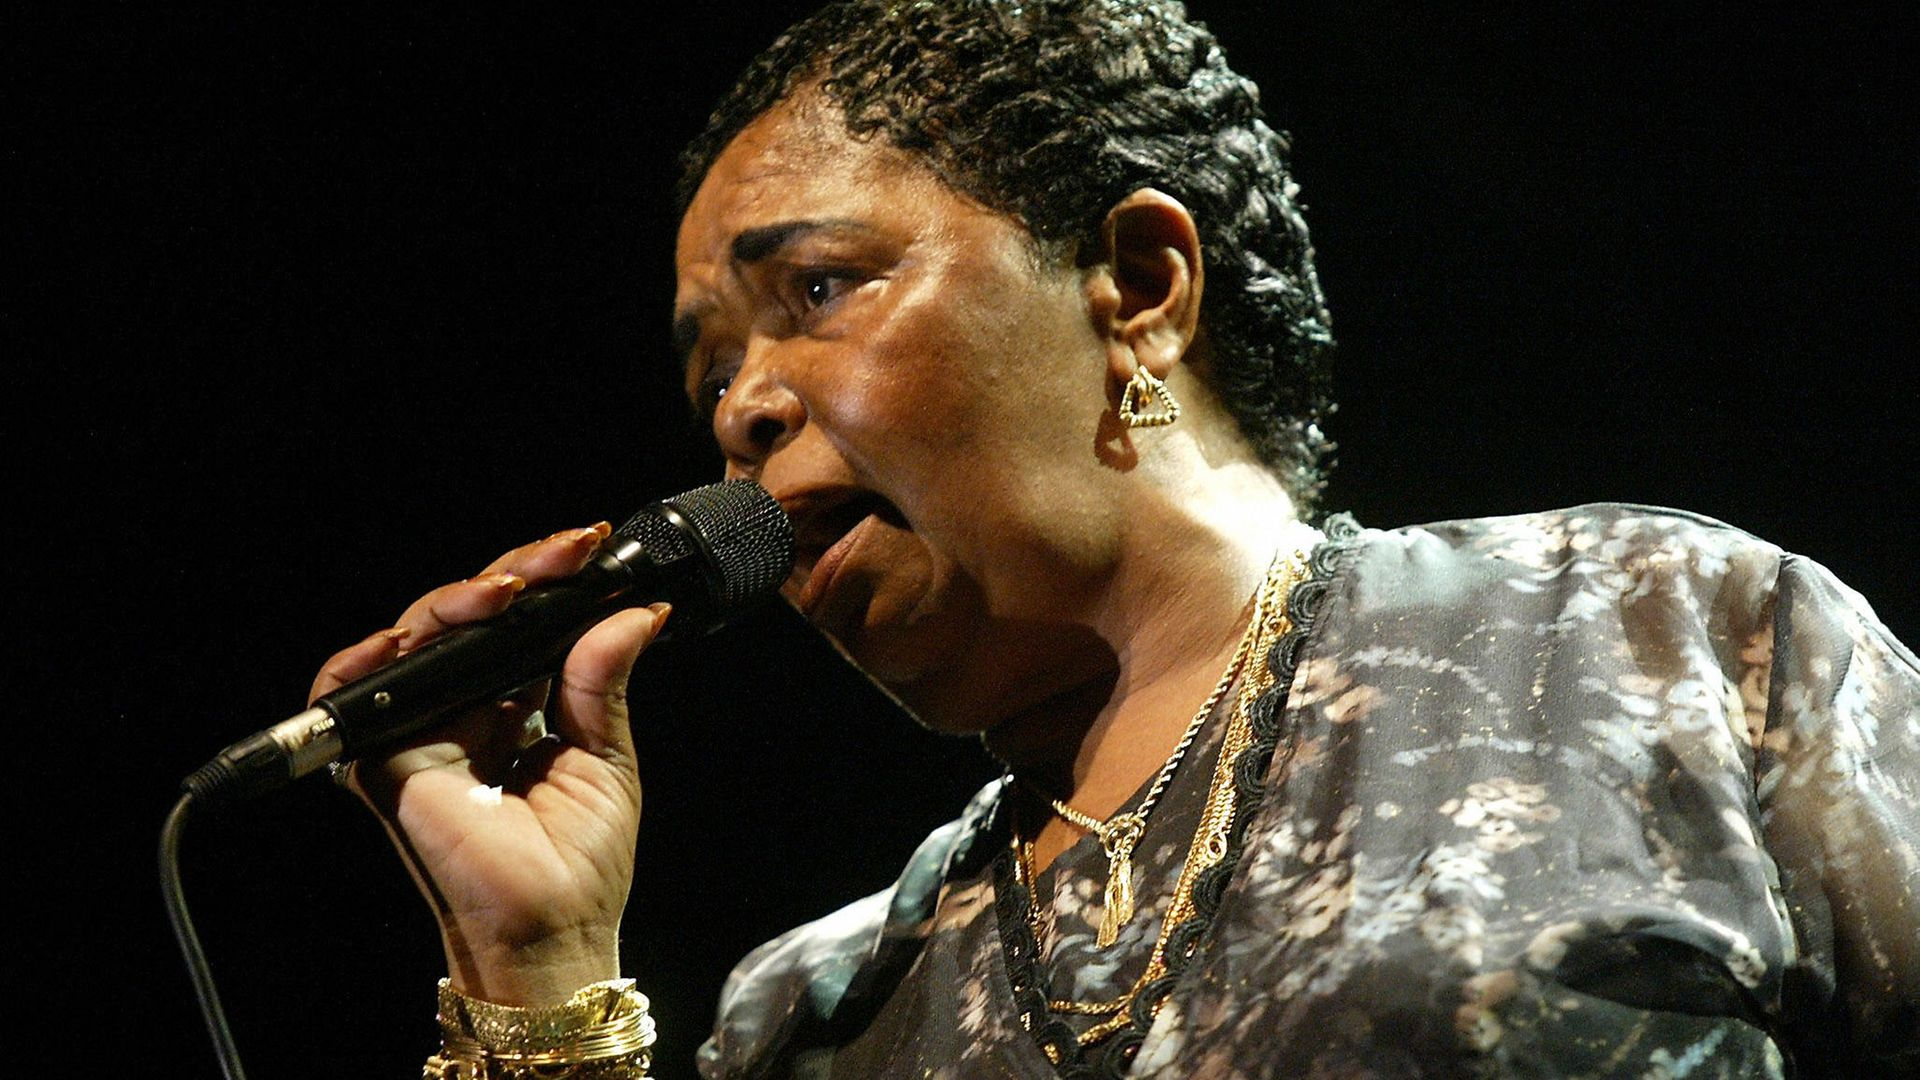 Singer Cesaria Evora of Cape Verde performs during her concert in Nicosia late 13 July 2004 - Credit: AFP via Getty Images